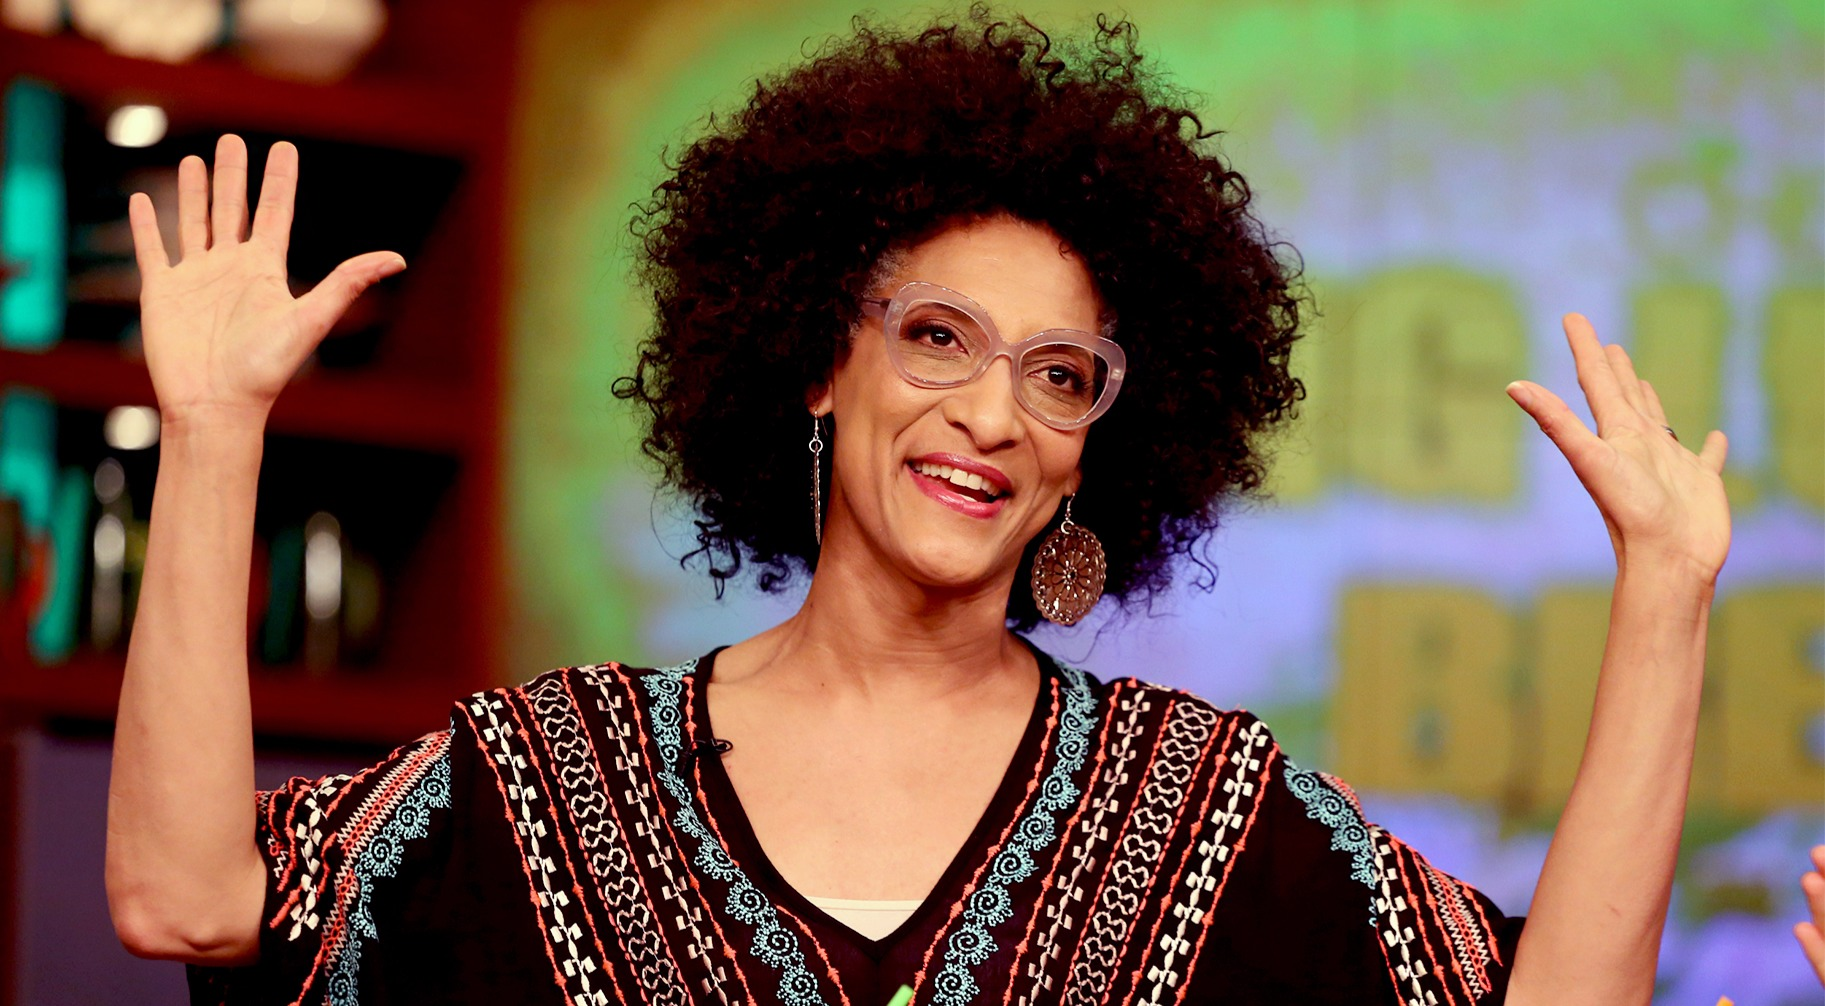 Carla Hall of raising her both hands on the set of 'The Chew'. She is one of the four co-hosts of ABC cooking-related talk show 'The Chew'.